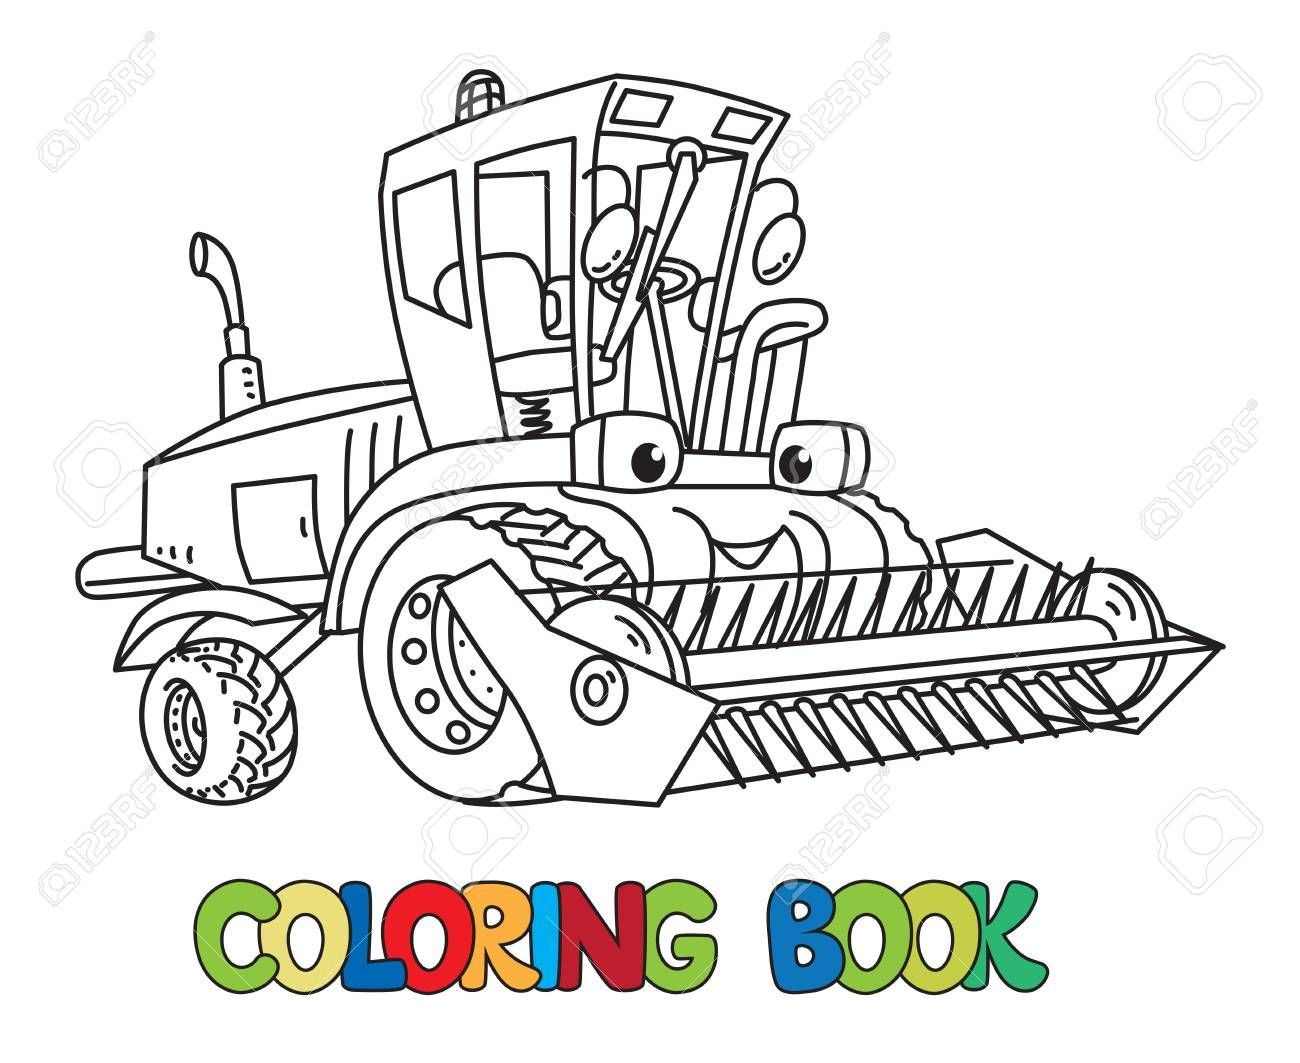 Lawn Mower Coloring Page For Kids Illustration Sponsored